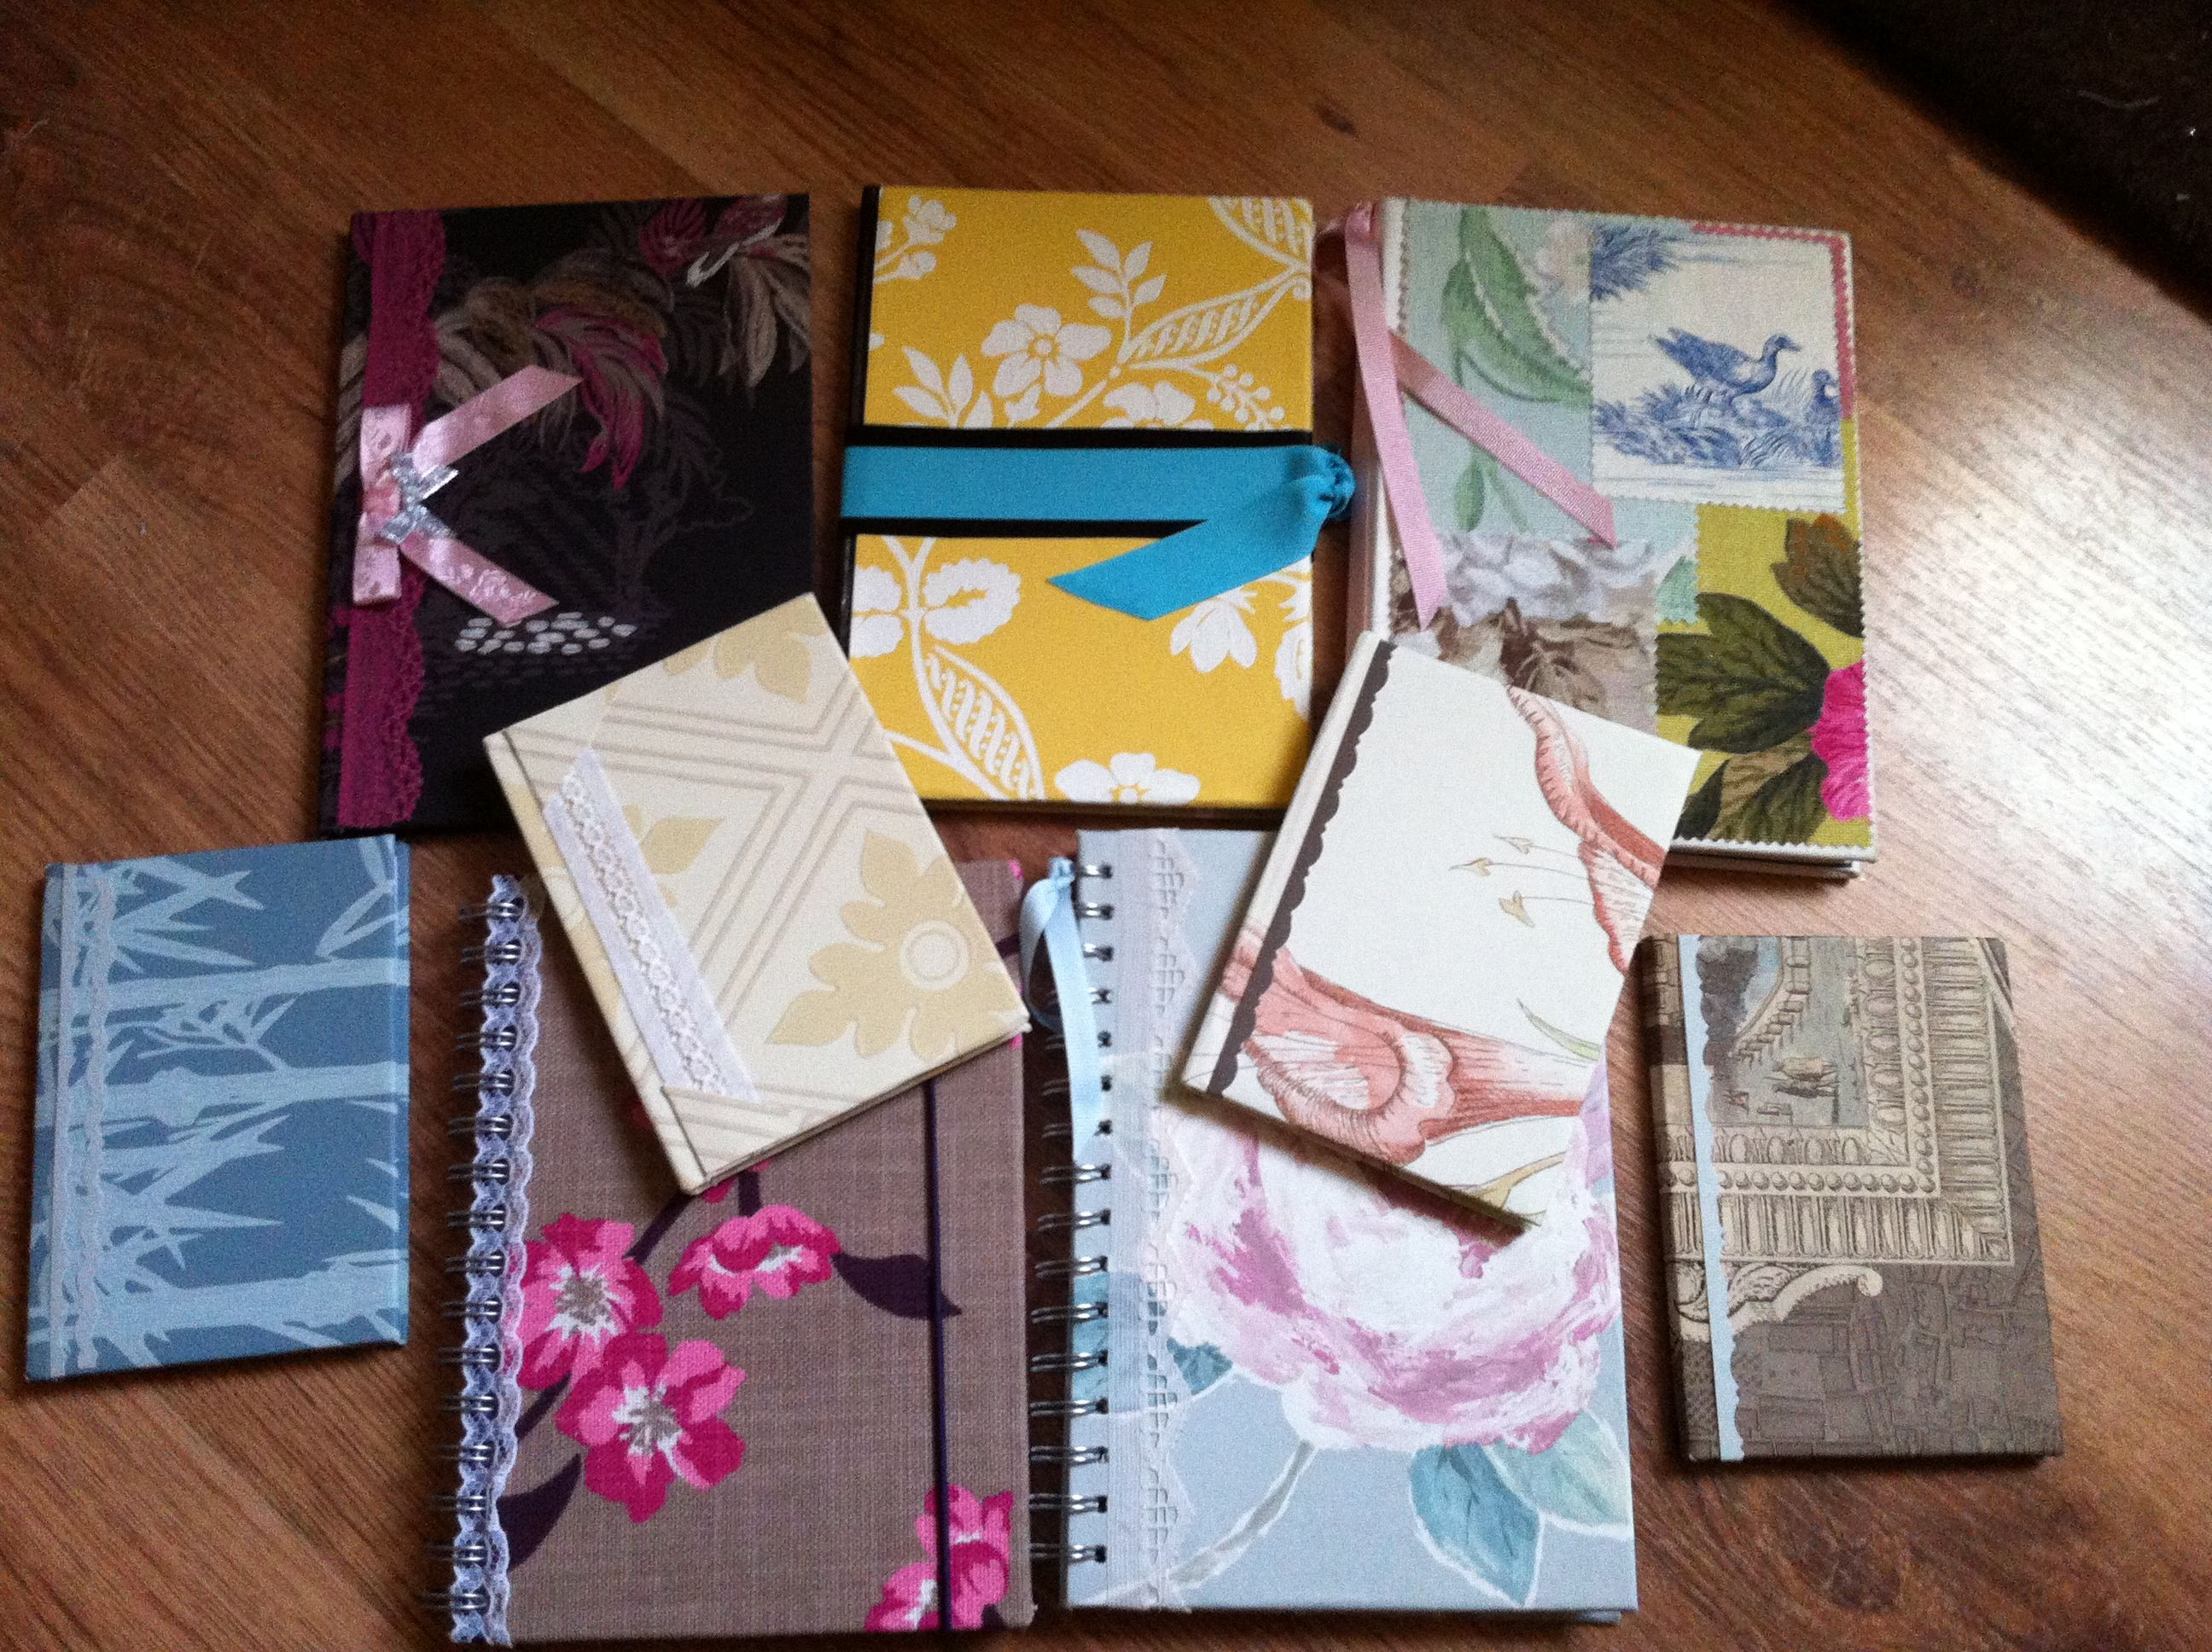 White apron poundland - Books Backed In Wallpaper And Ribbon Super Easy I Used Up All My